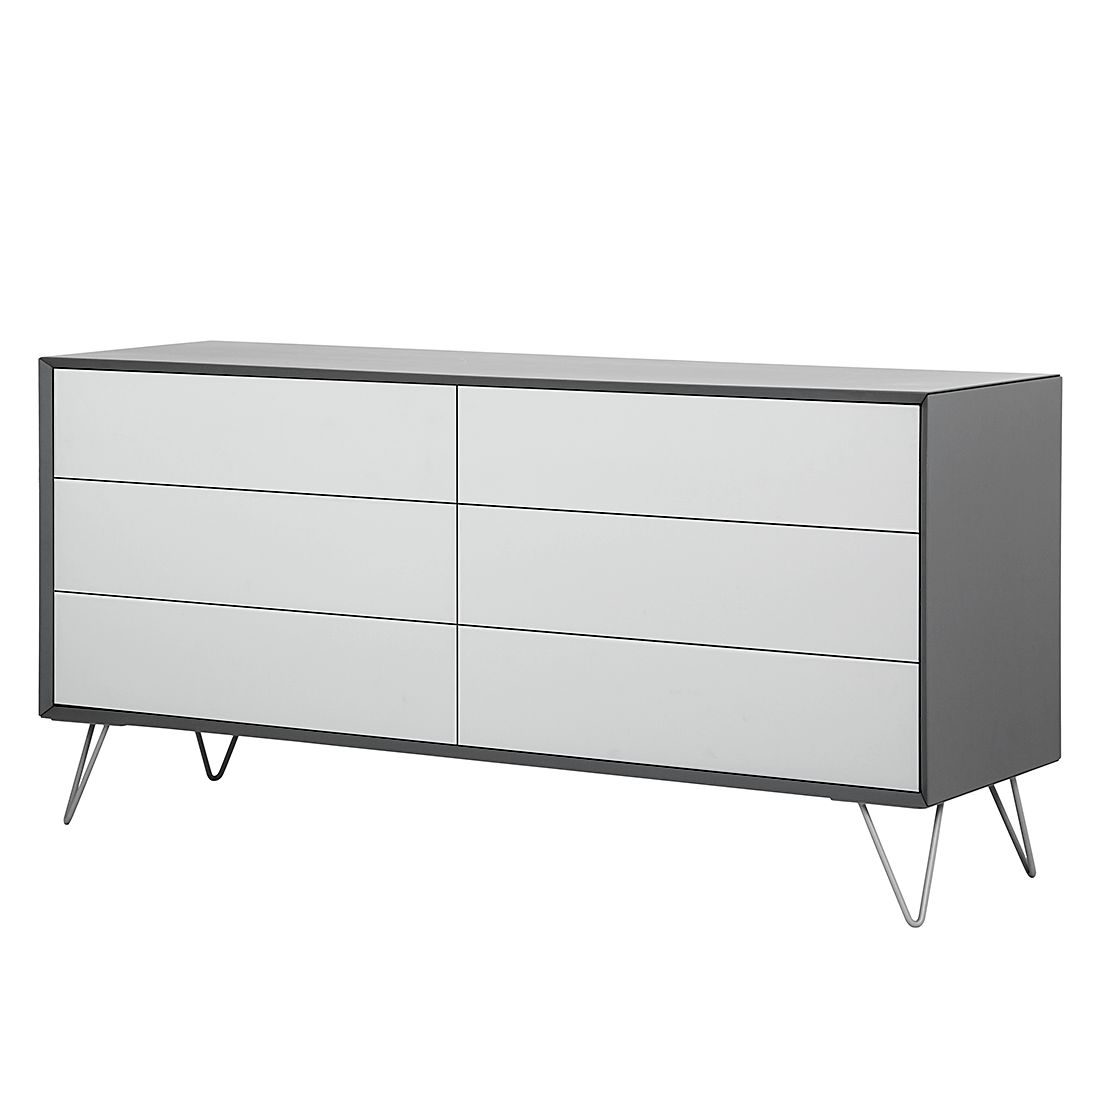 Kommode grau matt moderne sideboards kommode schiebet ren for Sideboard und kommoden